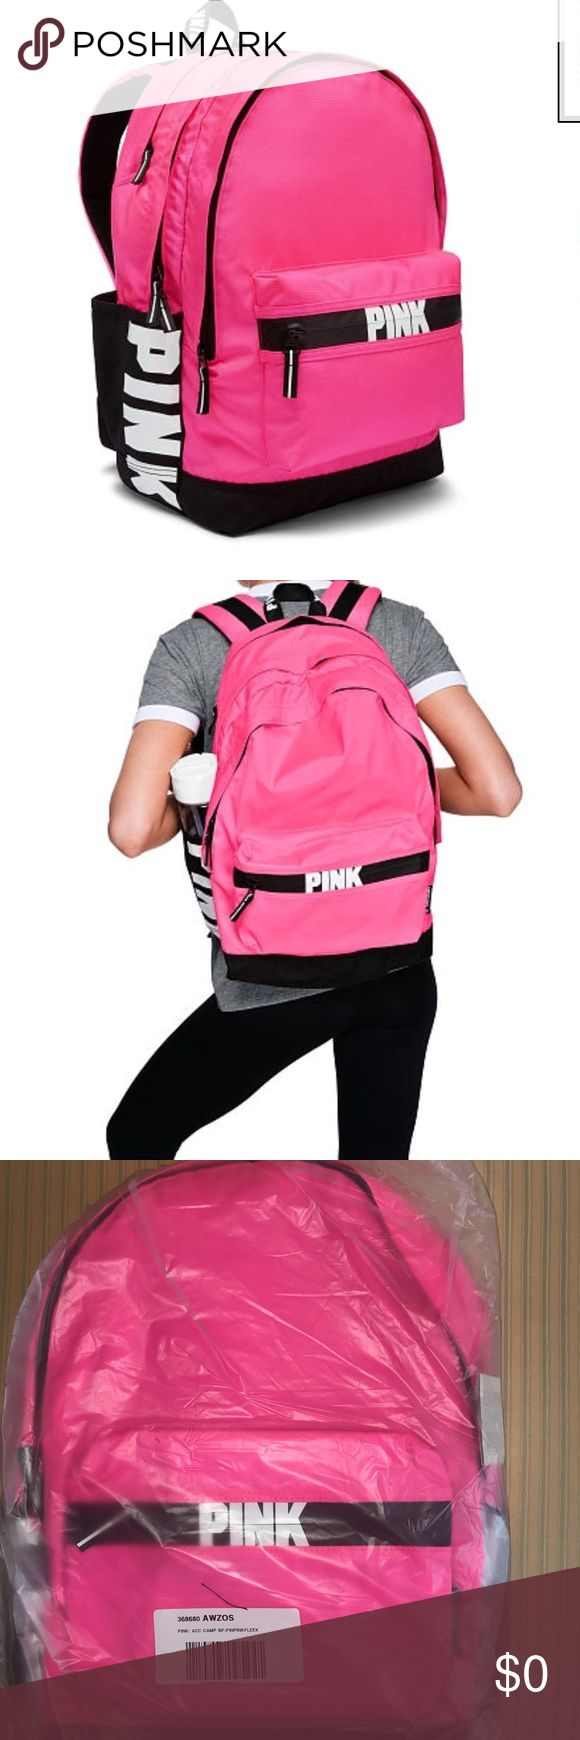 🆕Just Added Pink Victorias Secret Backpack 🆕Bundle and save;Shipped in online original packaging The one and only Campus Backpack! Durable and super cute, it's got plenty of pockets and tons of room to fit all your campus essentials. Comfy padded straps with mesh overlay for breathability  Zippered padded laptop sleeve fits 17'' laptop Exterior zip pocket Internal mesh pocket 18in x12in Velcro closure side pockets:Color Pink on Fleek PINK Victoria's Secret Bags Backpacks